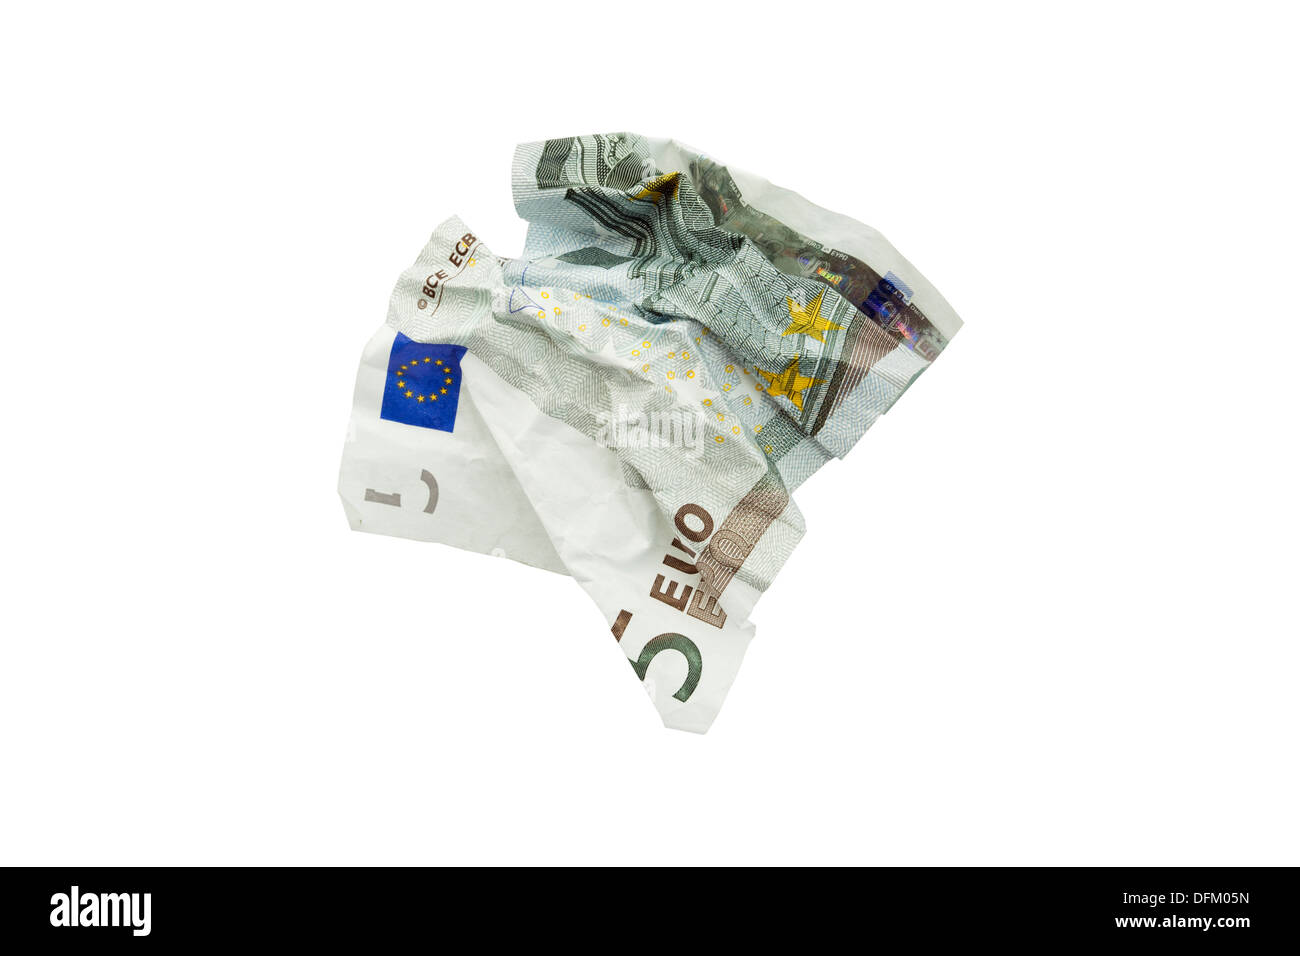 A five Euro note screwed up isolated on a white background to illustrate the European Union wasting money concept - Stock Image